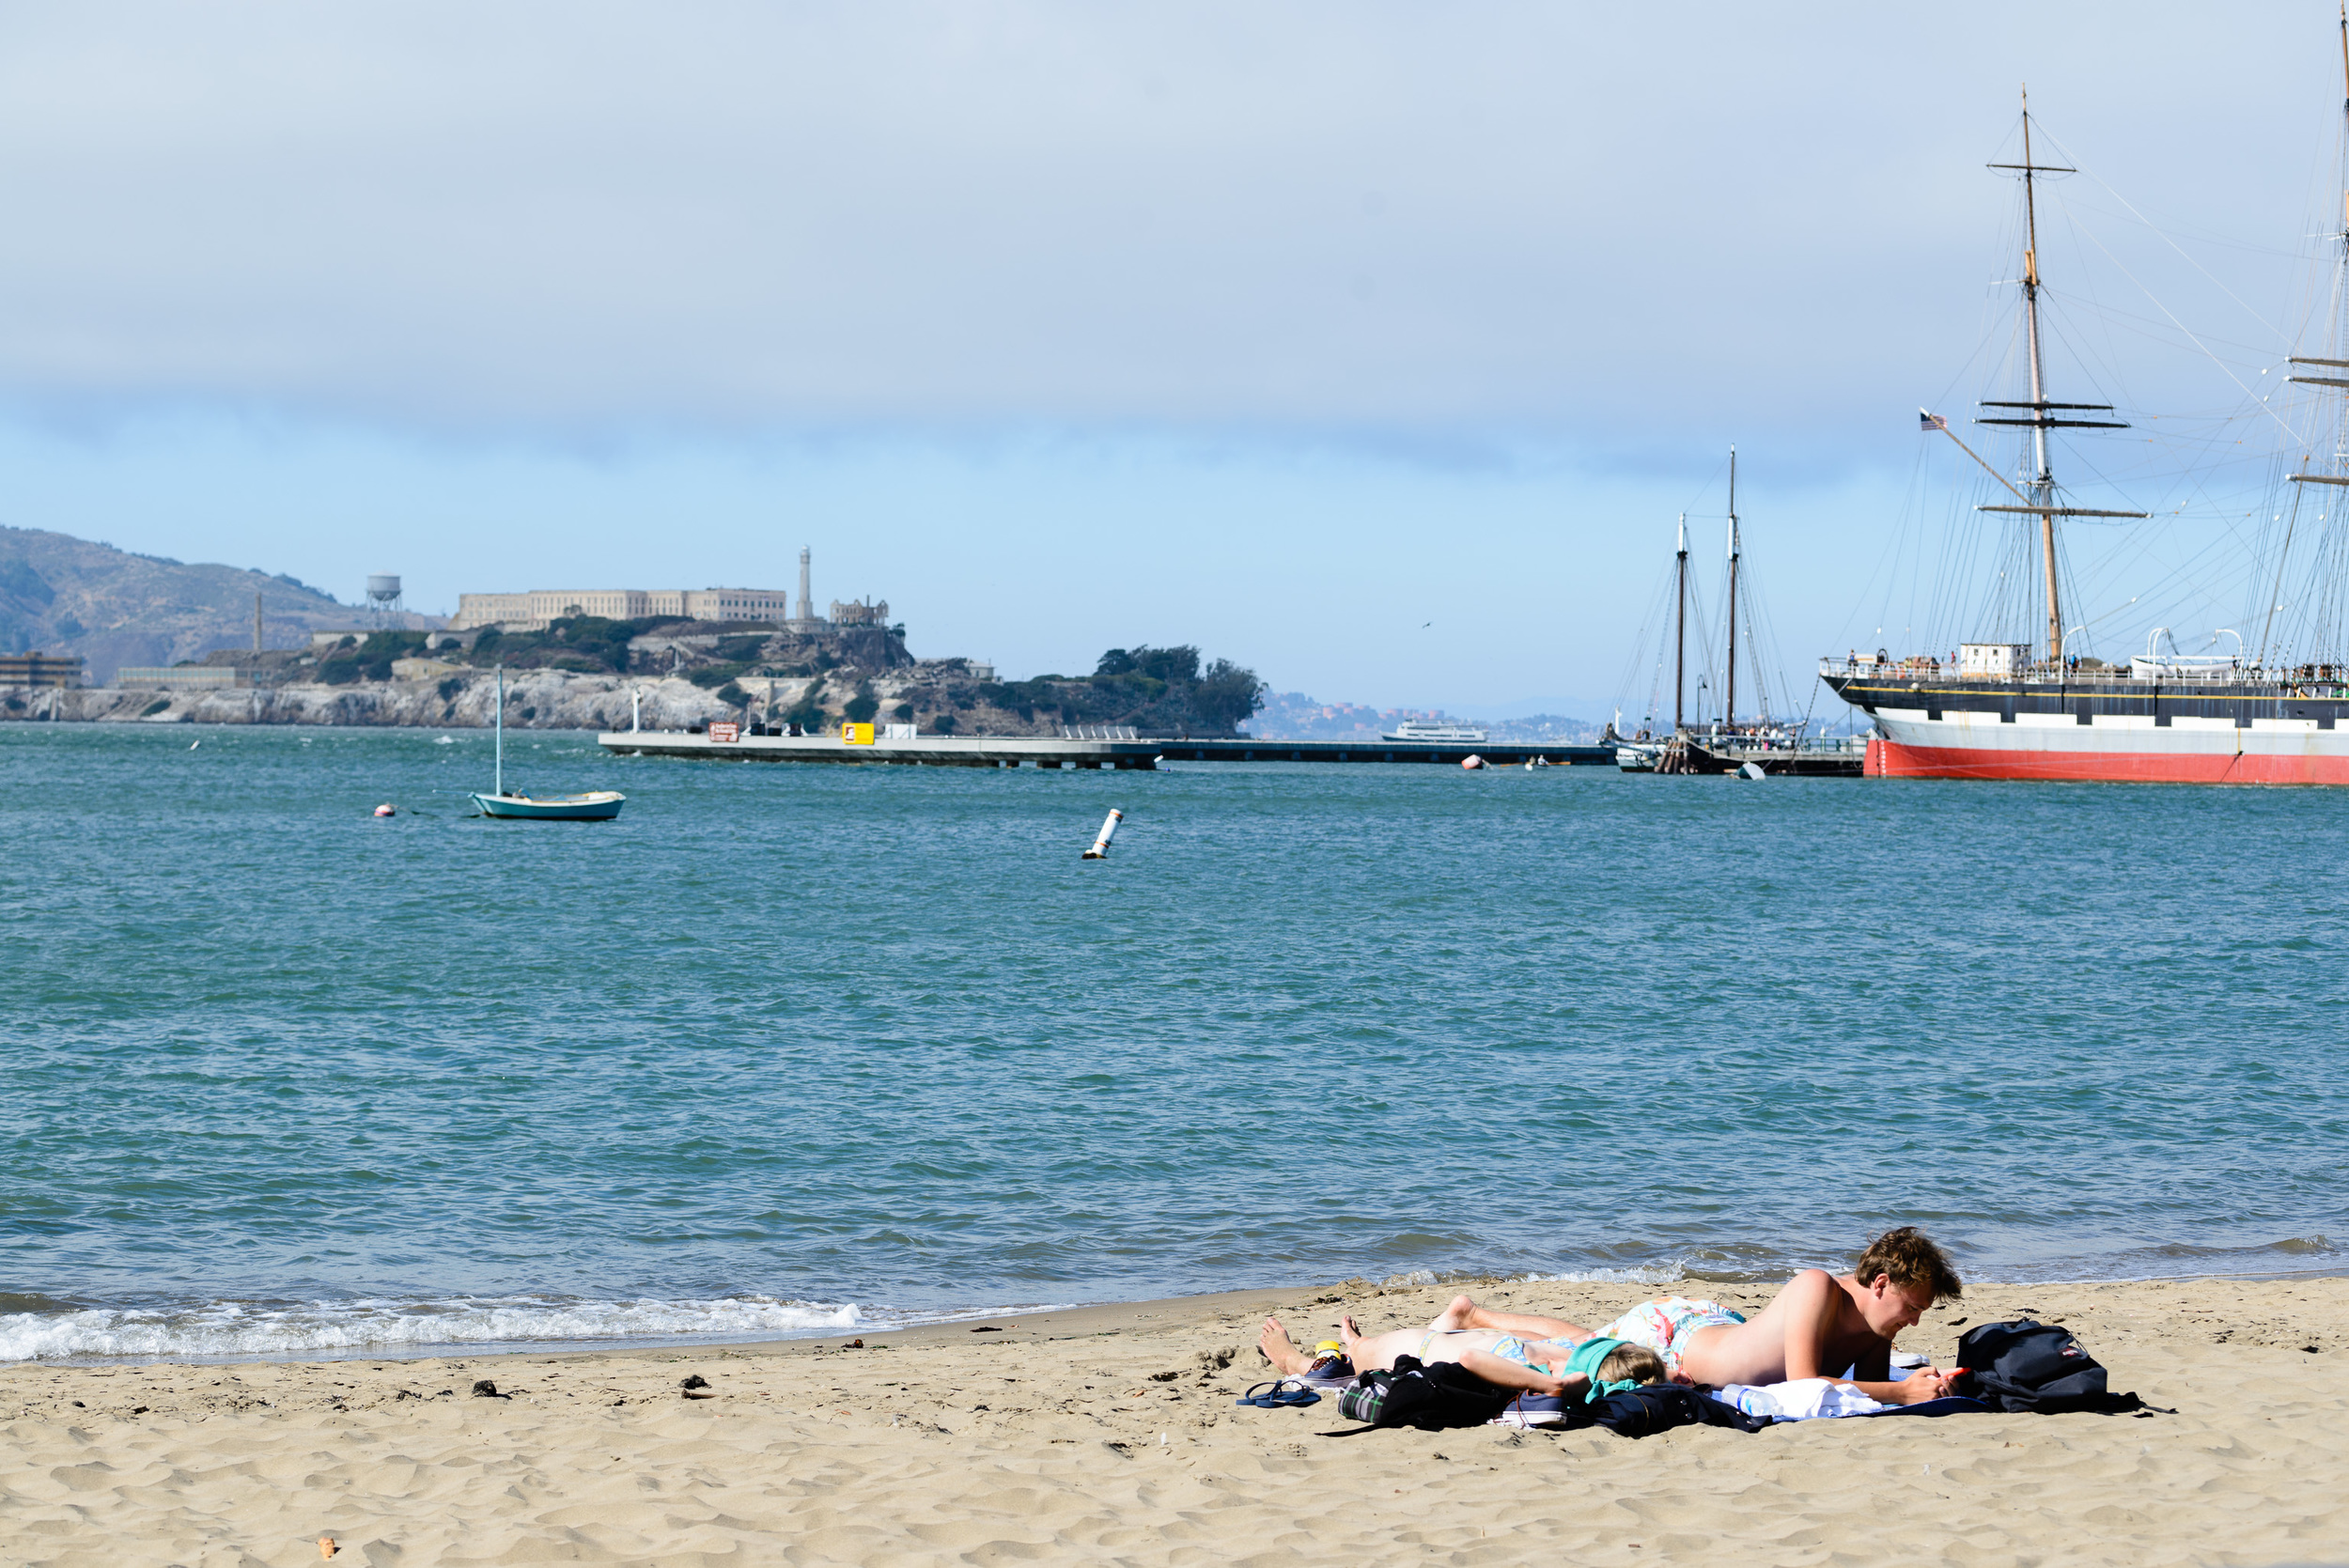 Finishing up with a most rare sight: people sunbathing at the beach in San Francisco! You can see the clouds coming in. The fog was rolling in at this point so they didn't have long.